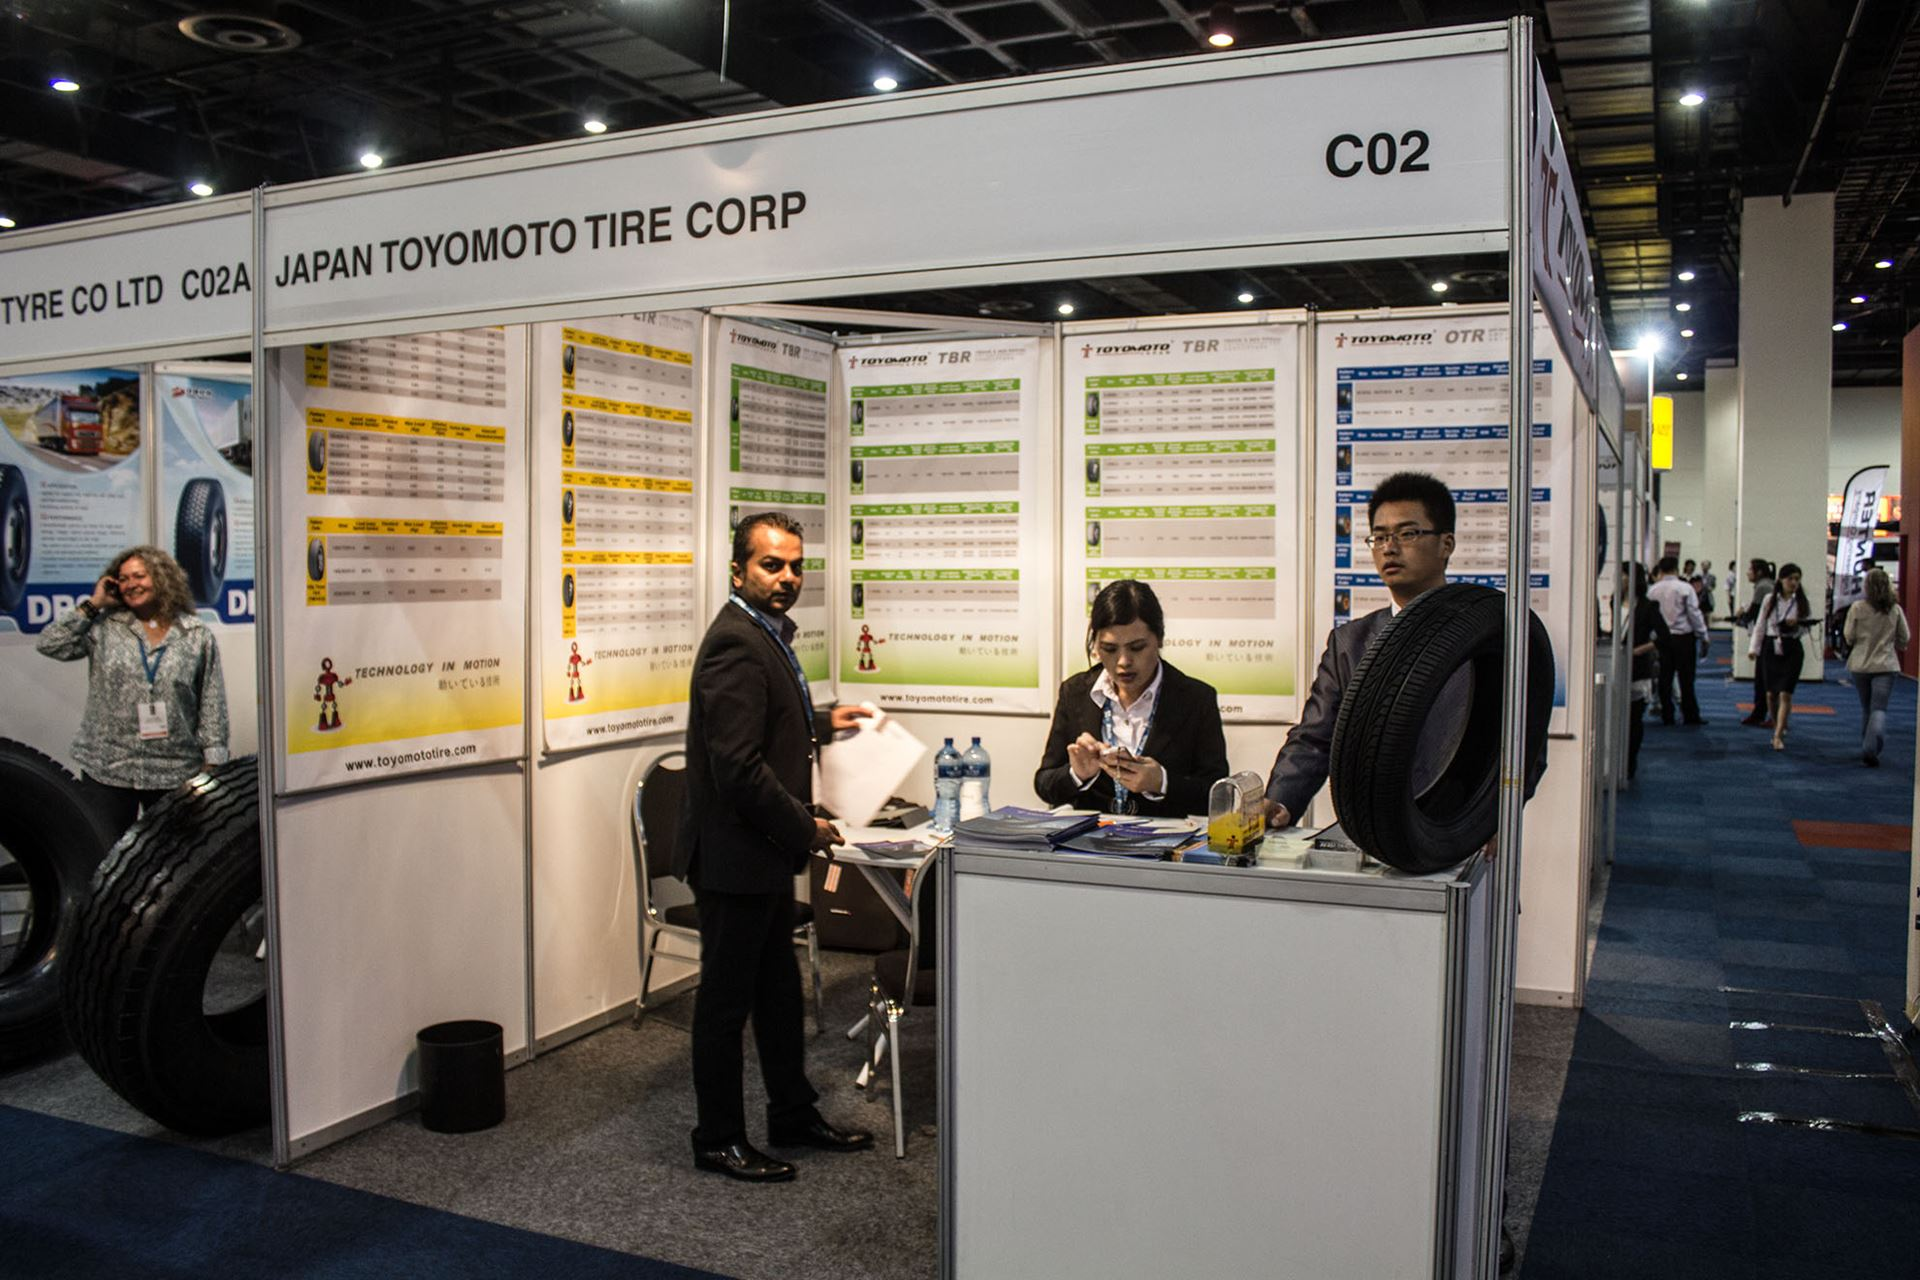 Tyre-Expo-South-Africa-2014-Japan-Toyomoto-tire